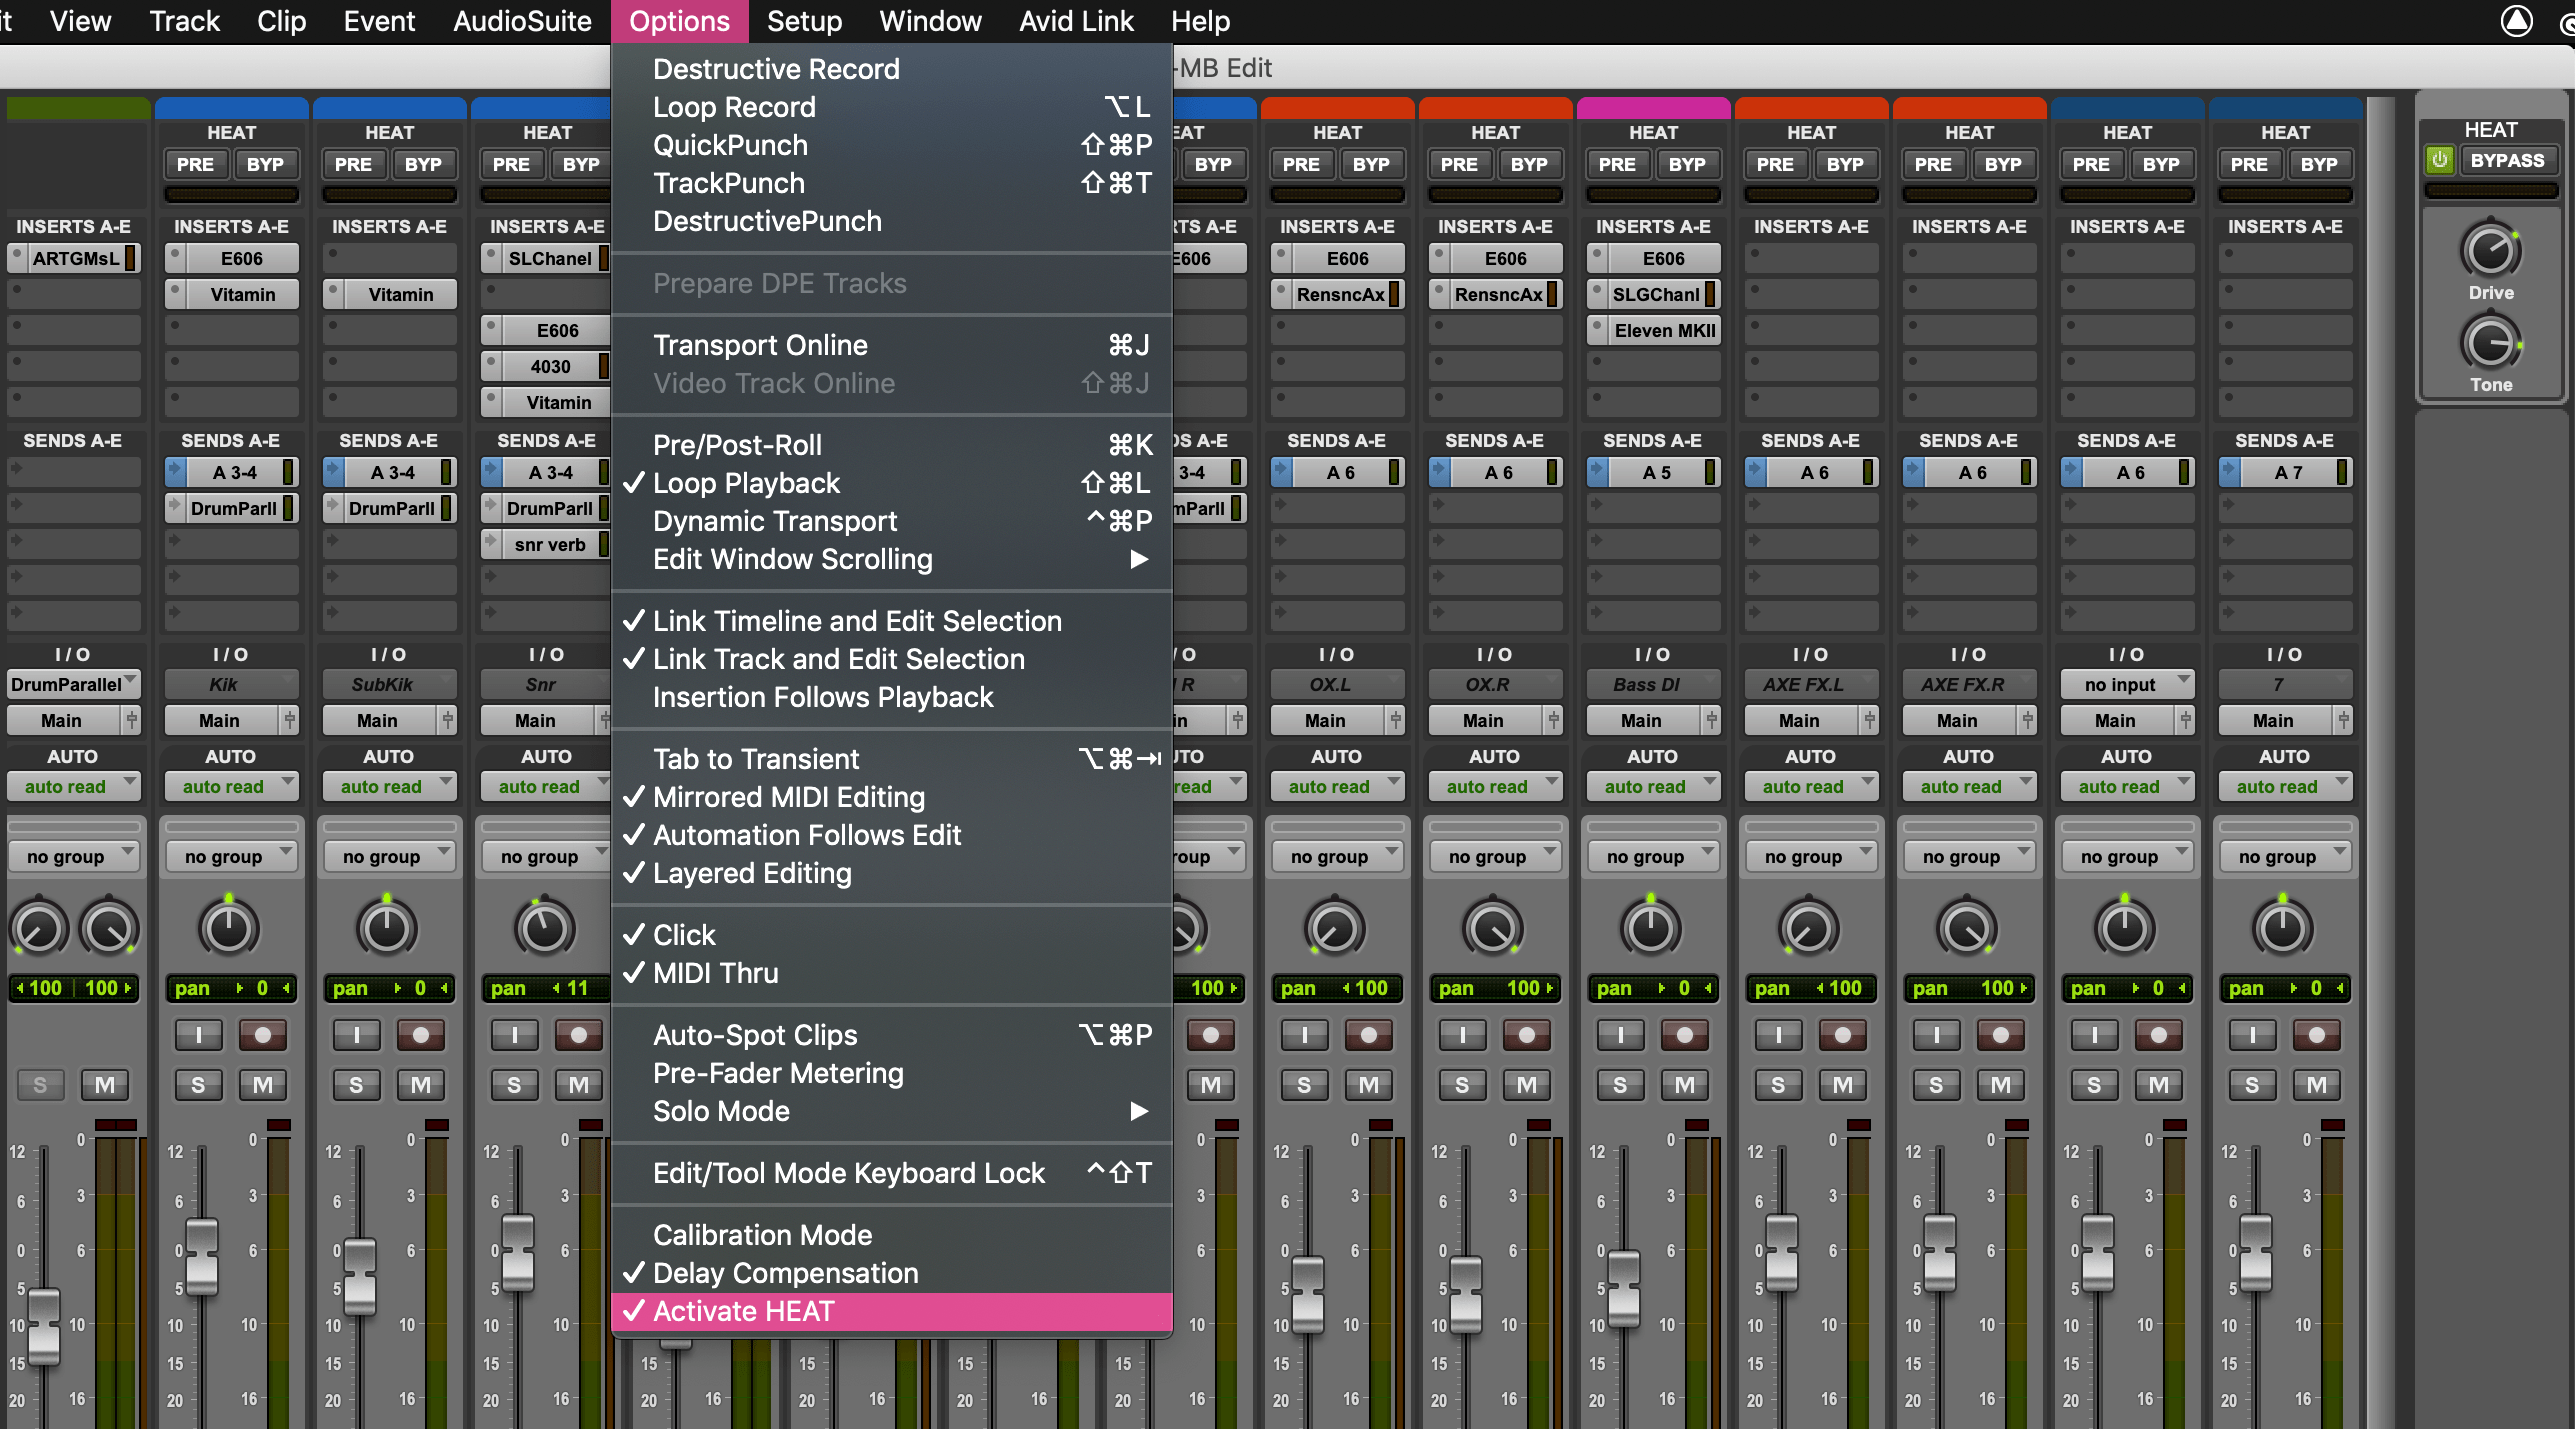 HEAT Available for Pro Tools 2019.6